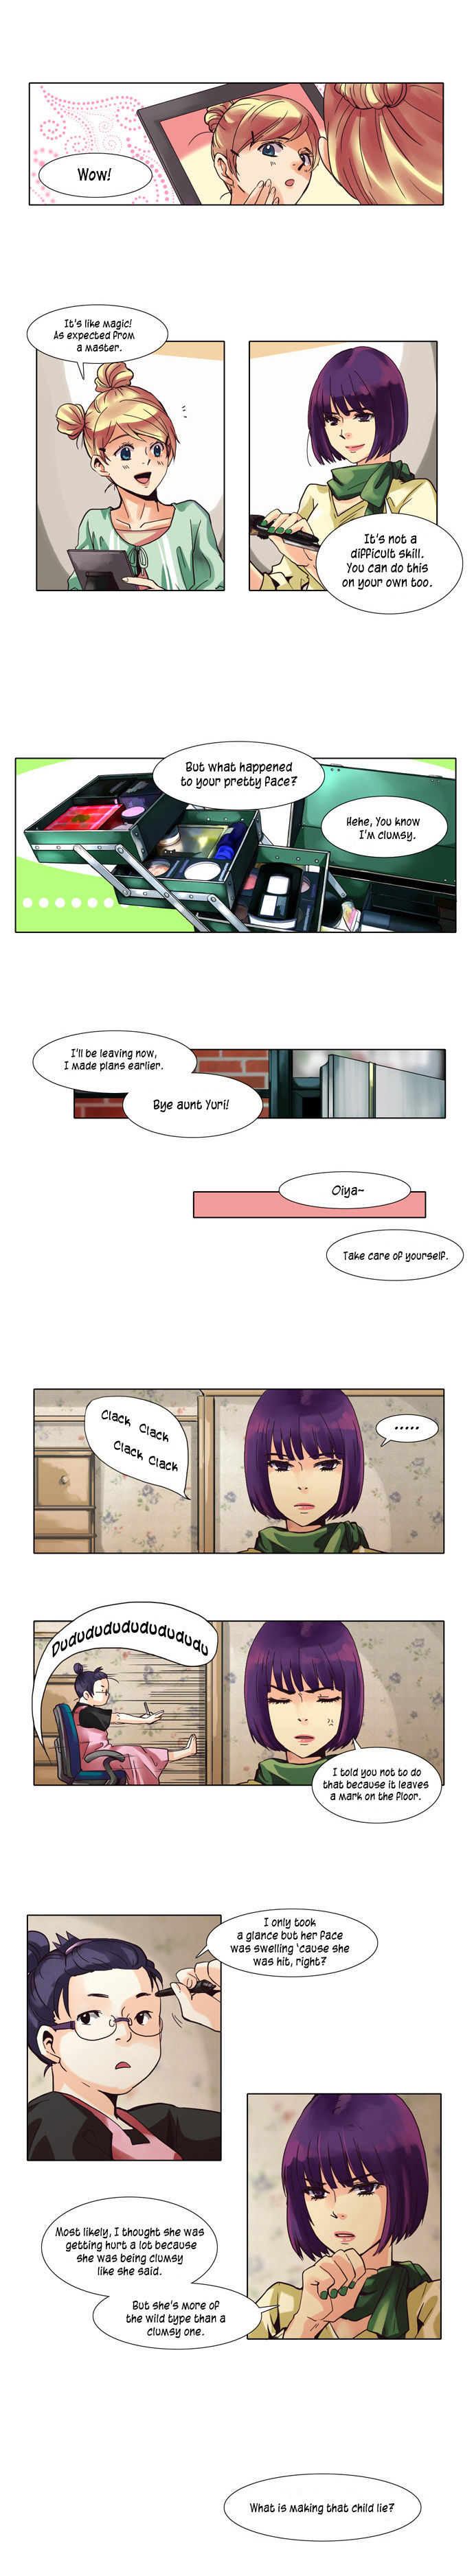 Dear, Only You Don't Know! 5 Page 1